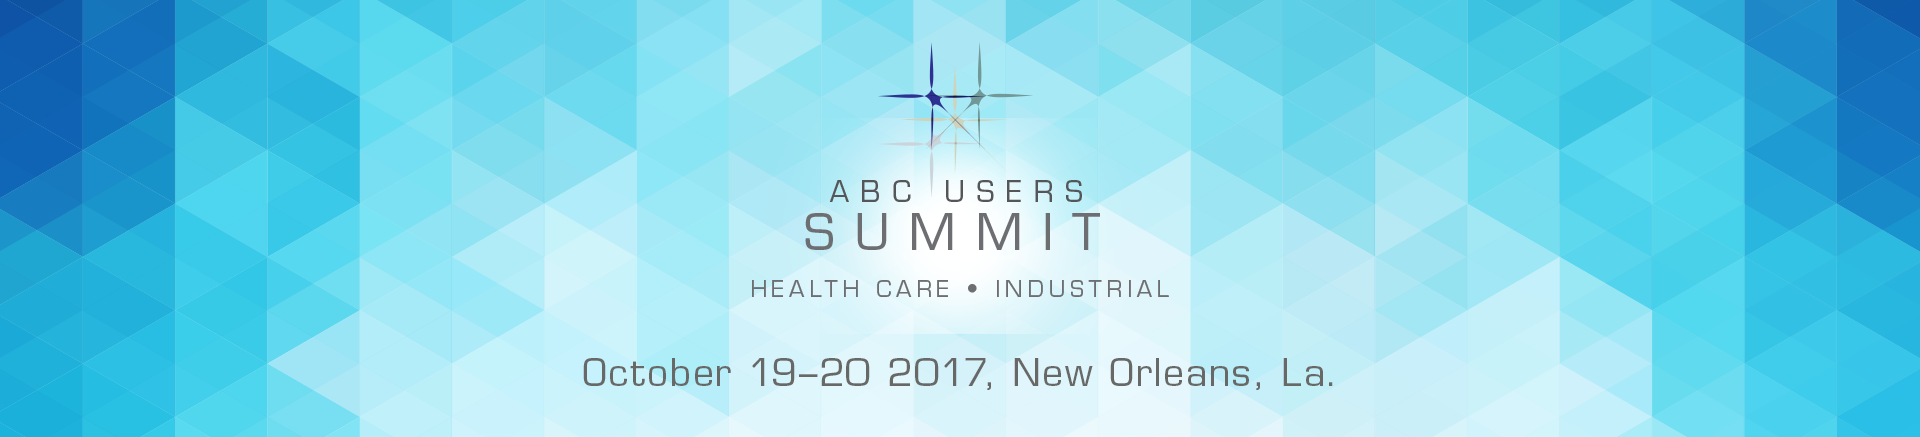 2017 ABC Users Summit